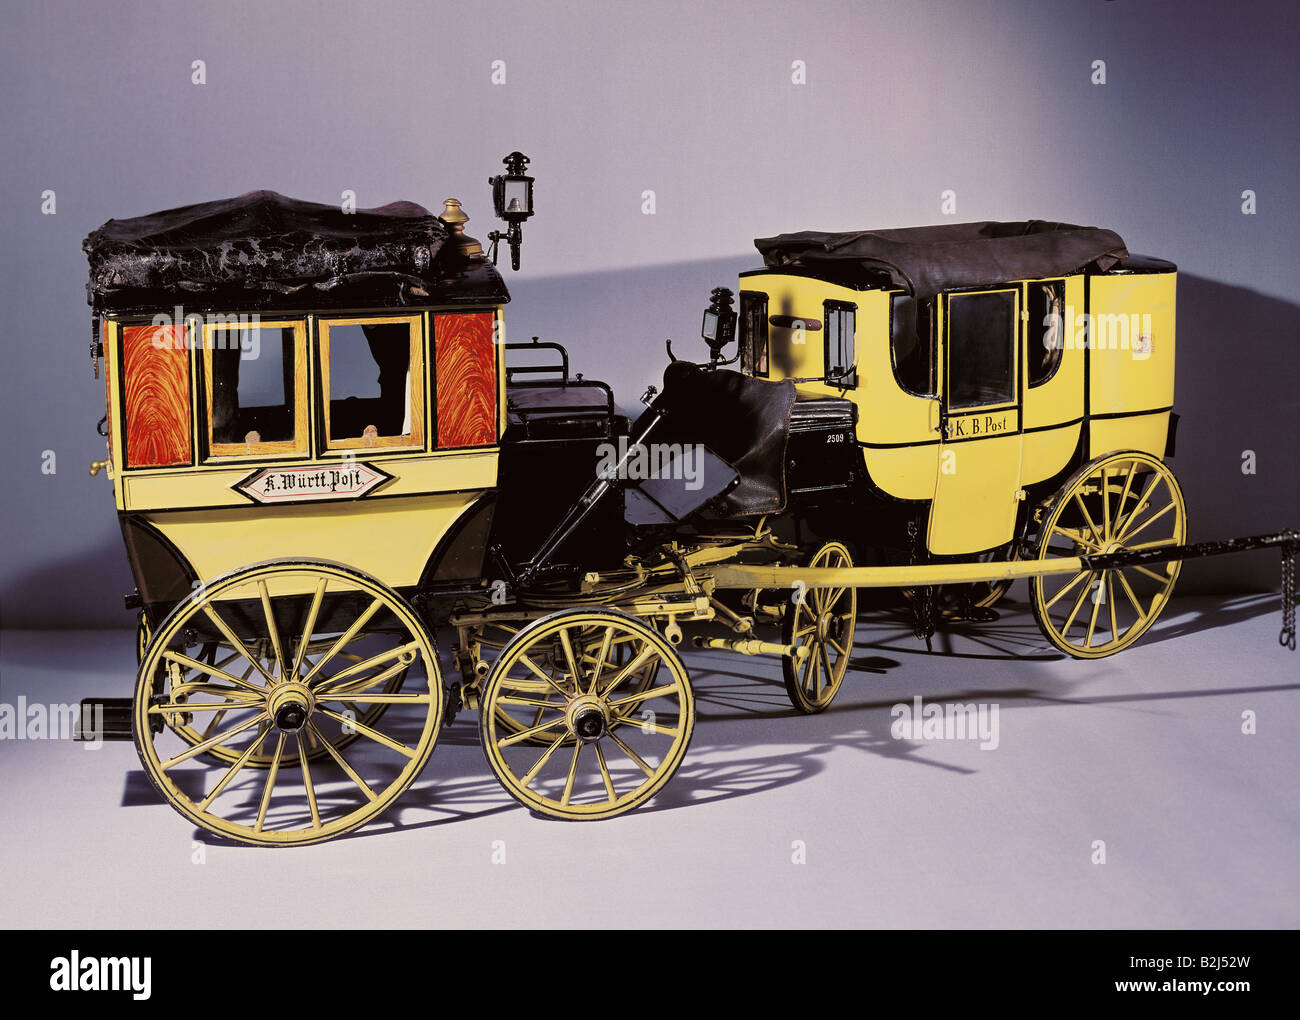 mail post stagecoaches stockfotos mail post stagecoaches bilder alamy. Black Bedroom Furniture Sets. Home Design Ideas